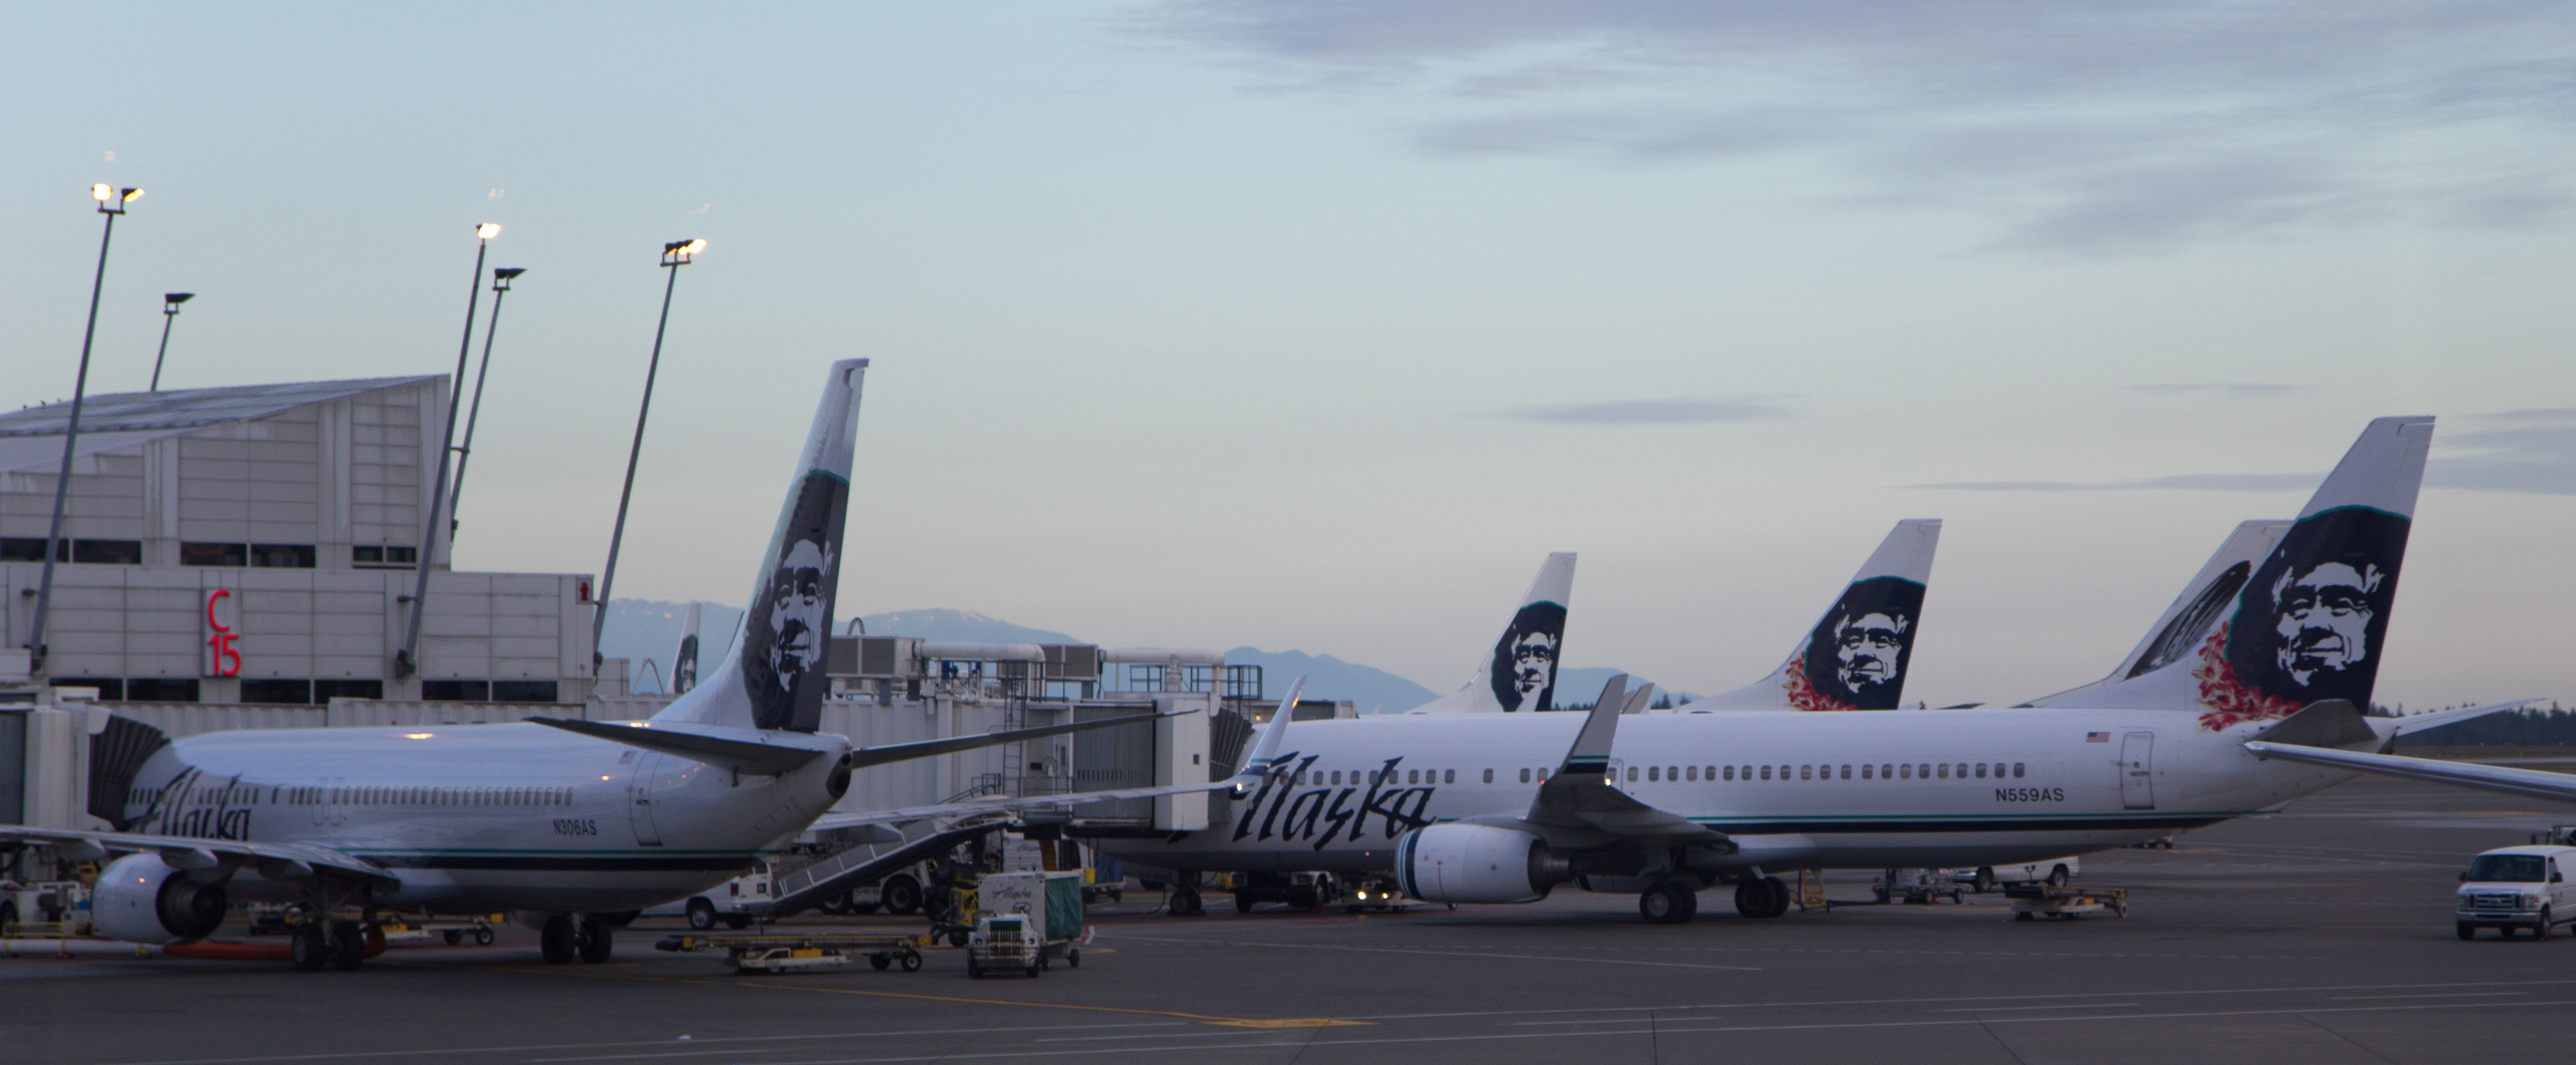 Early morning photo showing Alaska Airlines aircraft parked at an airport terminal, with jetways connected to the planes. Five aircraft can be seen in the photo.